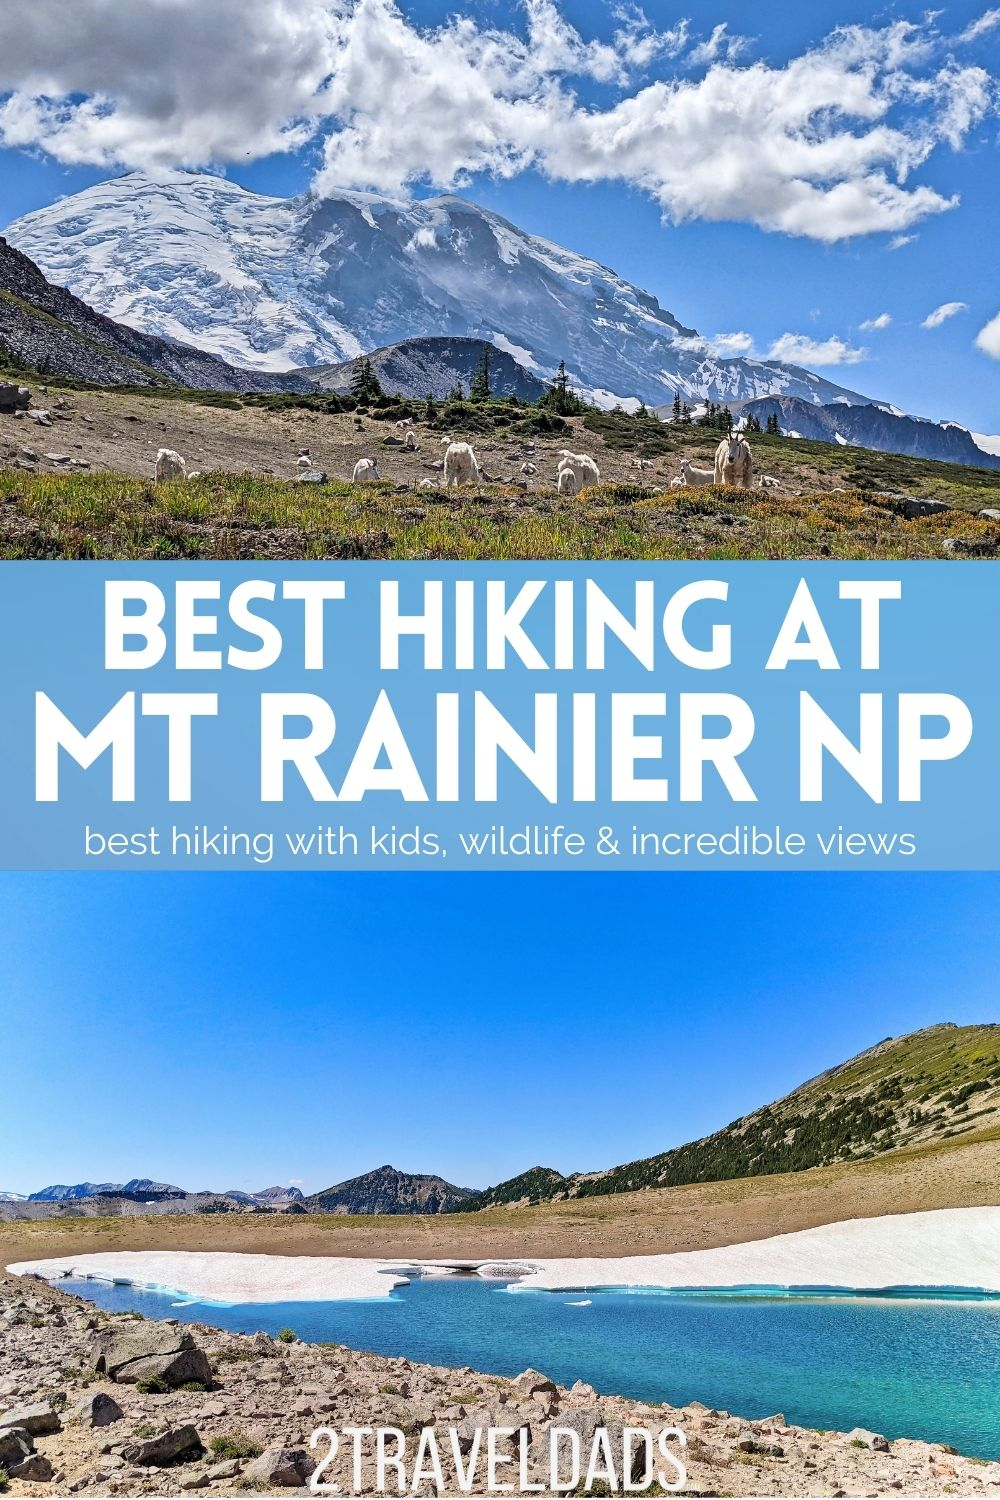 Hiking at Mount Rainier National Park is a great summer activity. These are the best hikes with kids or for a reasonable challenge. From Paradise to Sunrise, Ohanapecosh to Lake Mowich, great hiking trails for any skill level.